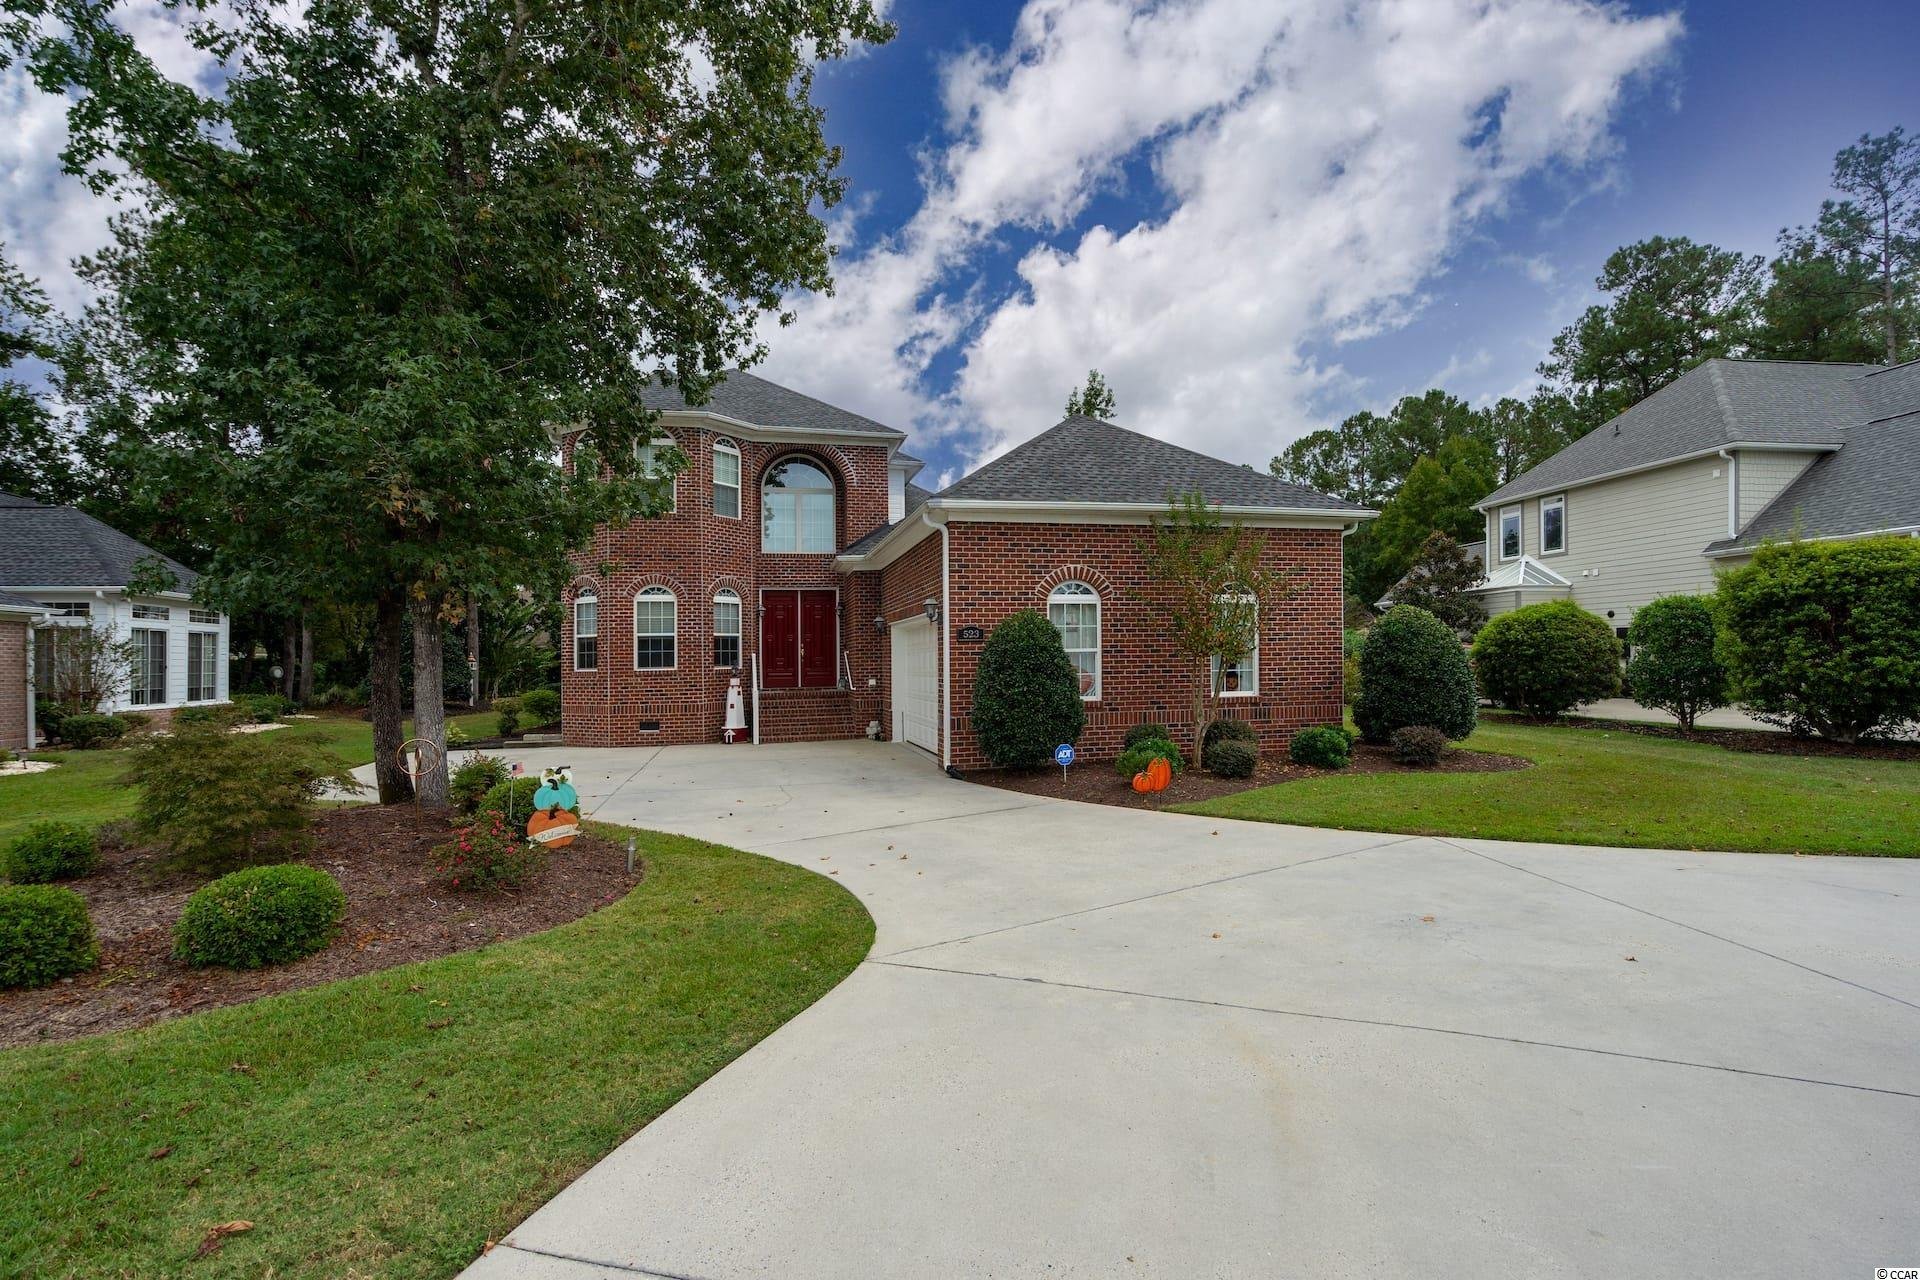 This MOVE IN READY, beautiful all brick home is located in the community of Long Bay, home of the prestigious Long Bay Golf Club, a signature Jack Nicklaus course.  Upon entering the home you are greeted with a lovely open foyer and stairway that leads to the second floor.  The entry floor has recently been updated with a beautiful wood look tile and pebble stone border, and the family room, kitchen, dining room, hall and master have also been updated with LVP flooring.  The family room is open above with windows that allow for lots of natural light  The owner's suite is located on the first floor along with one guest bedroom and bath.  The 3rd bedroom is upstairs along with a charming loft area that overlooks the family room below, perfect for a home office or separate relaxing area to give your out of town guests their own space.  There are porches that have EZE Breeze window systems on both levels with ceiling fans.  The garage comes with overhead storage systems and storage cabinets.  There is a side entry garage for your golf cart and the crawl space has been completely encapsulated with a floating barrier system, sump pumps, dehumidifiers and flooring insulation.  Nothing has been left to chance in this extraordinarily well maintained home.